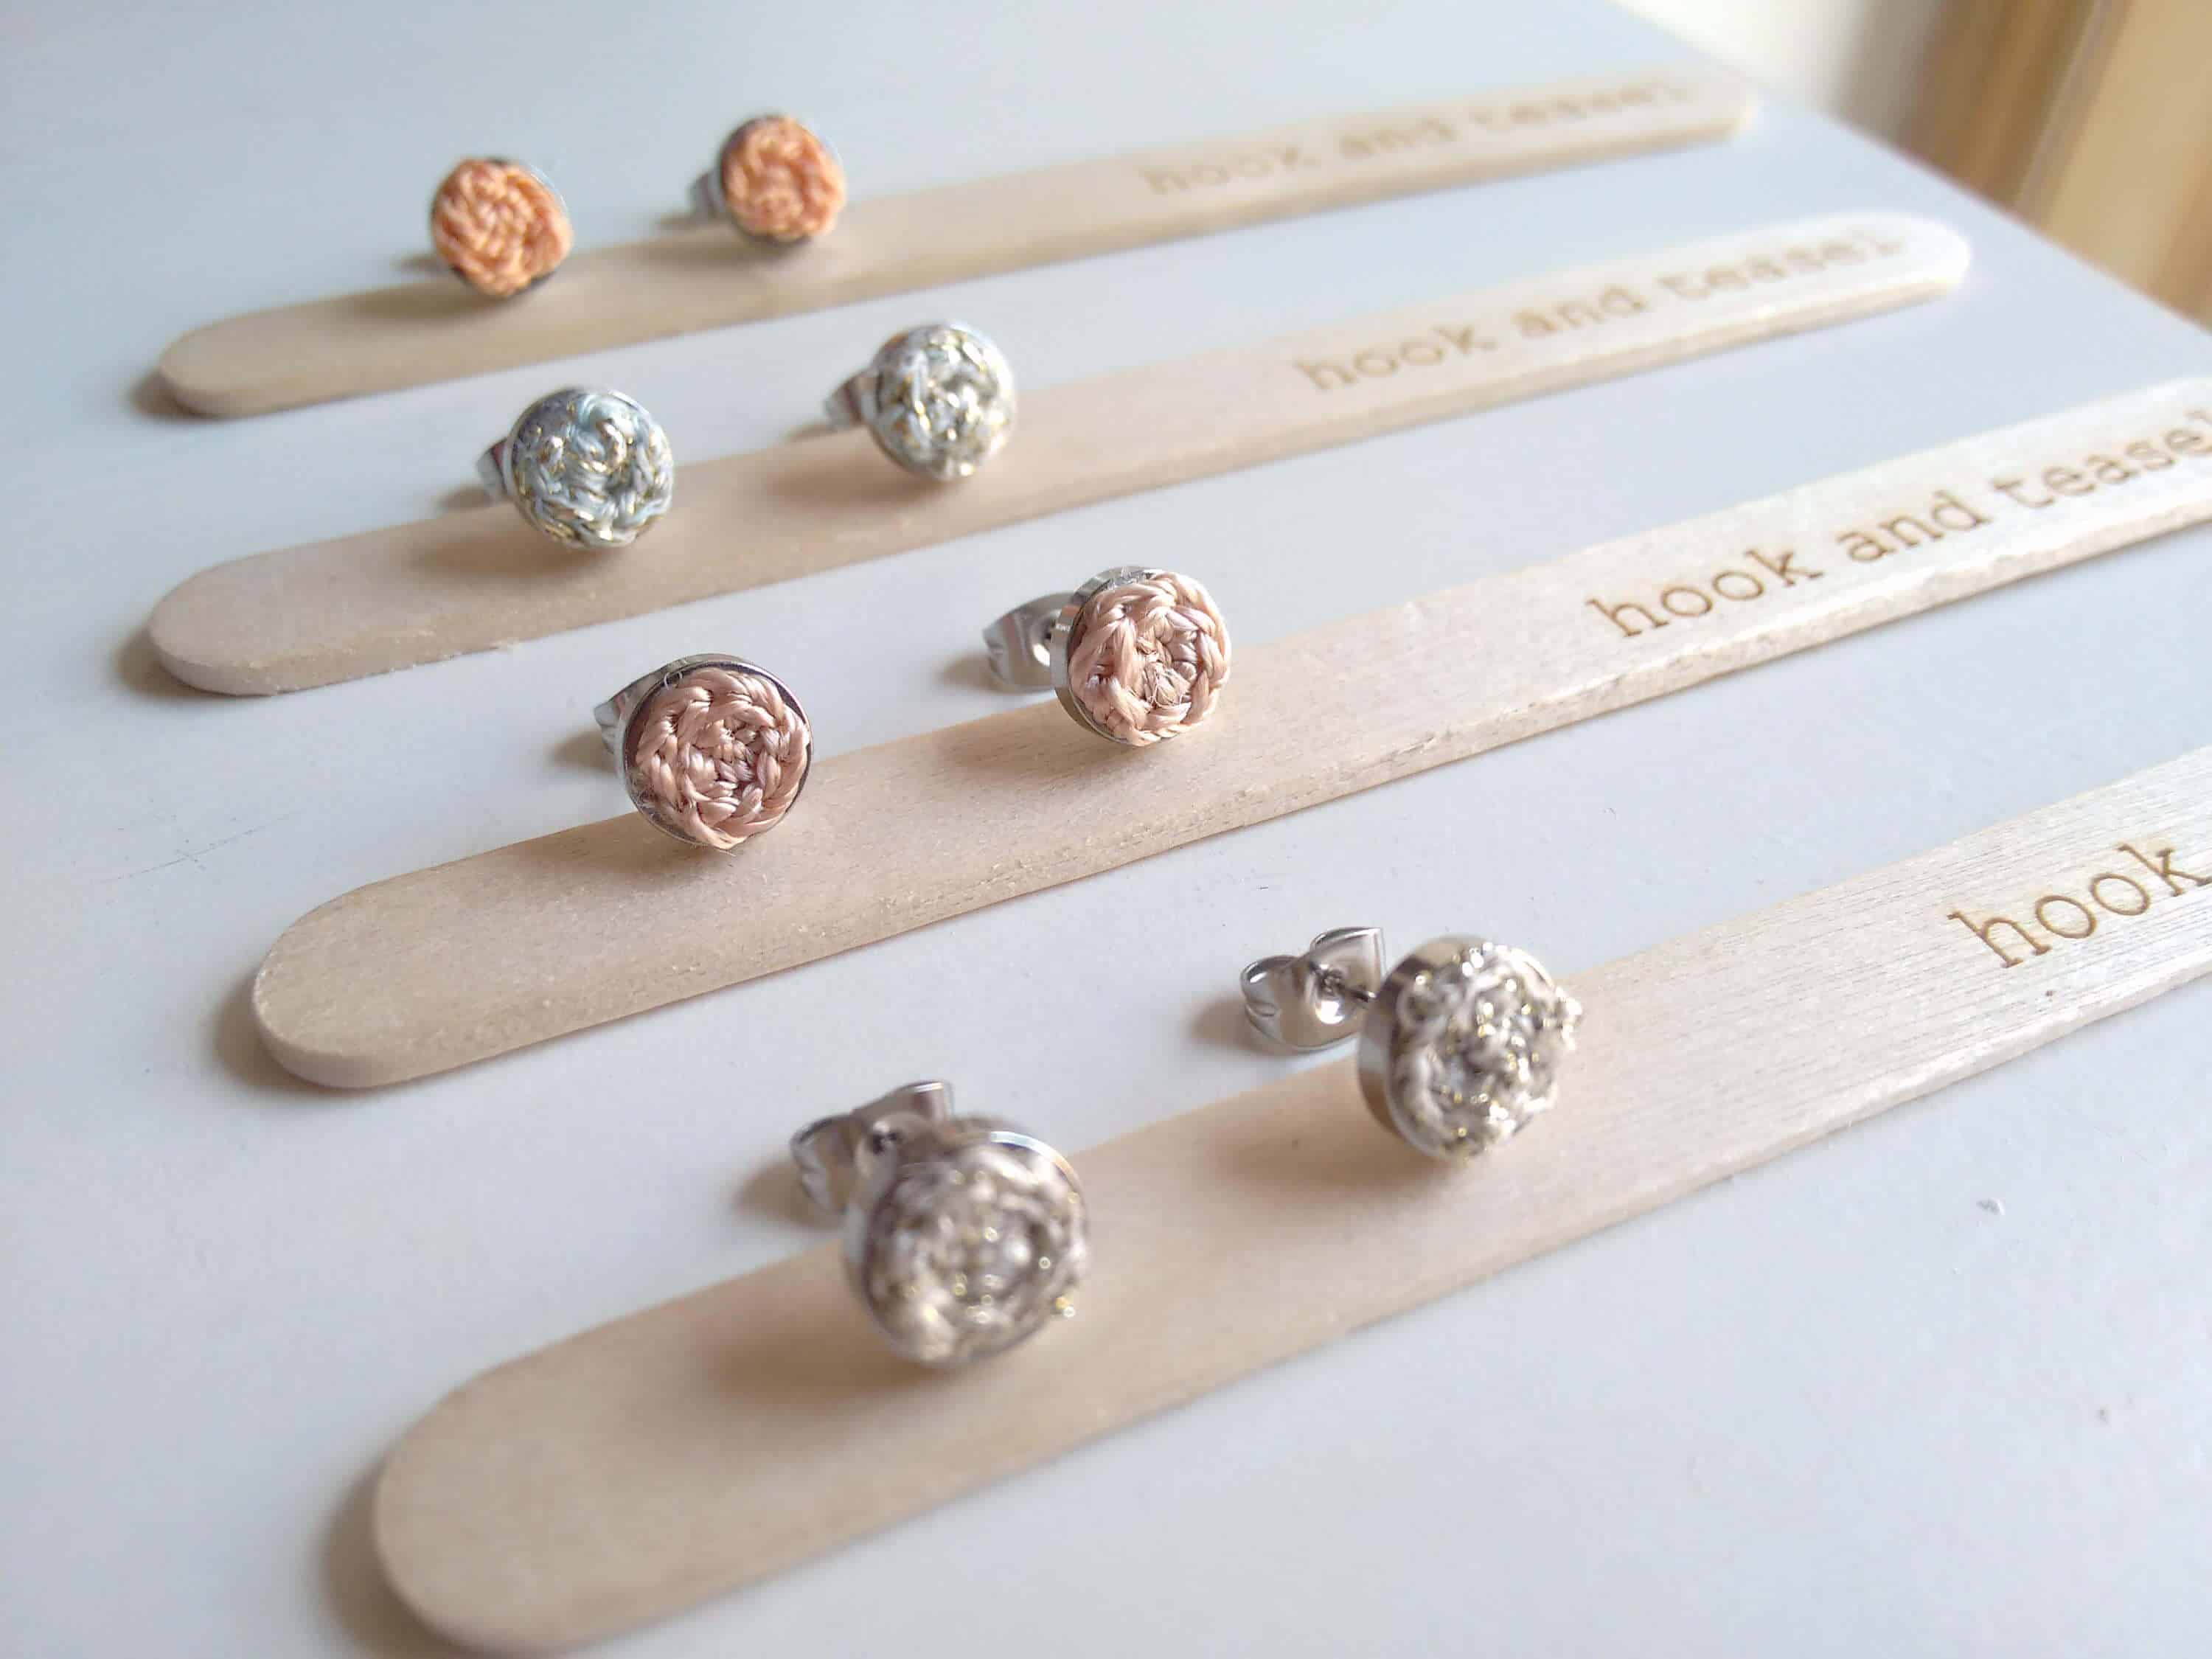 Photo of 4 pairs of earrings from Yarn and Teasel each pair on a popsicle stick